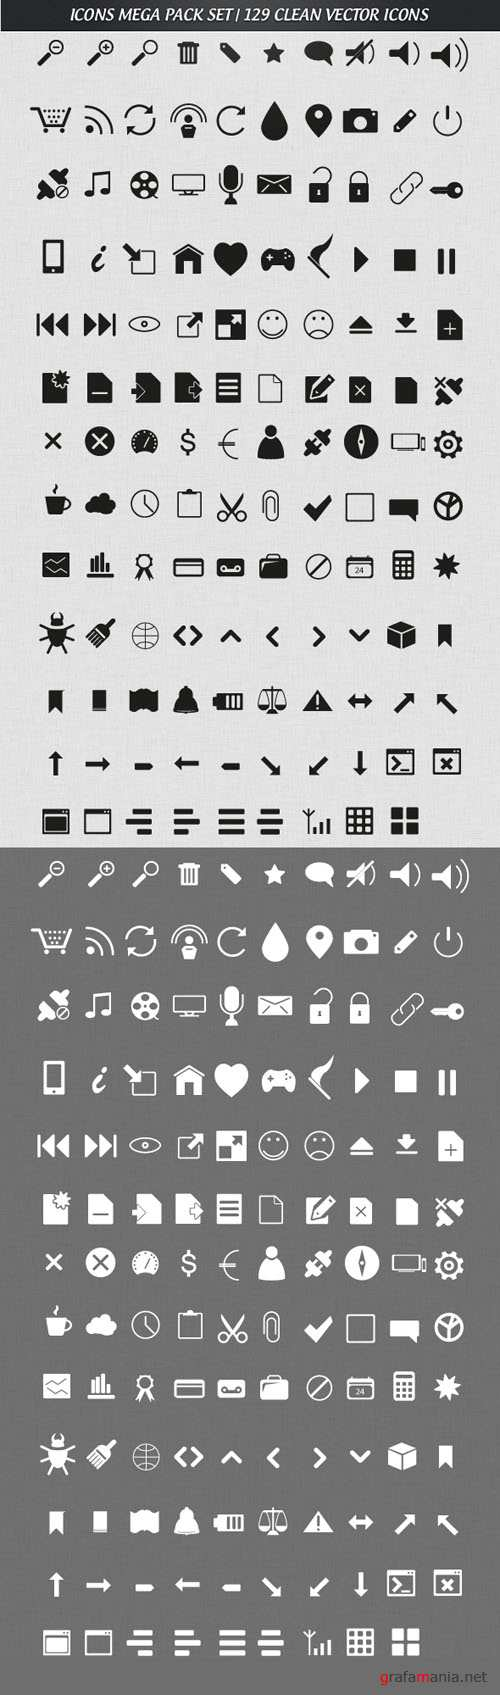 129 Clean Mega Pack Vector Icons